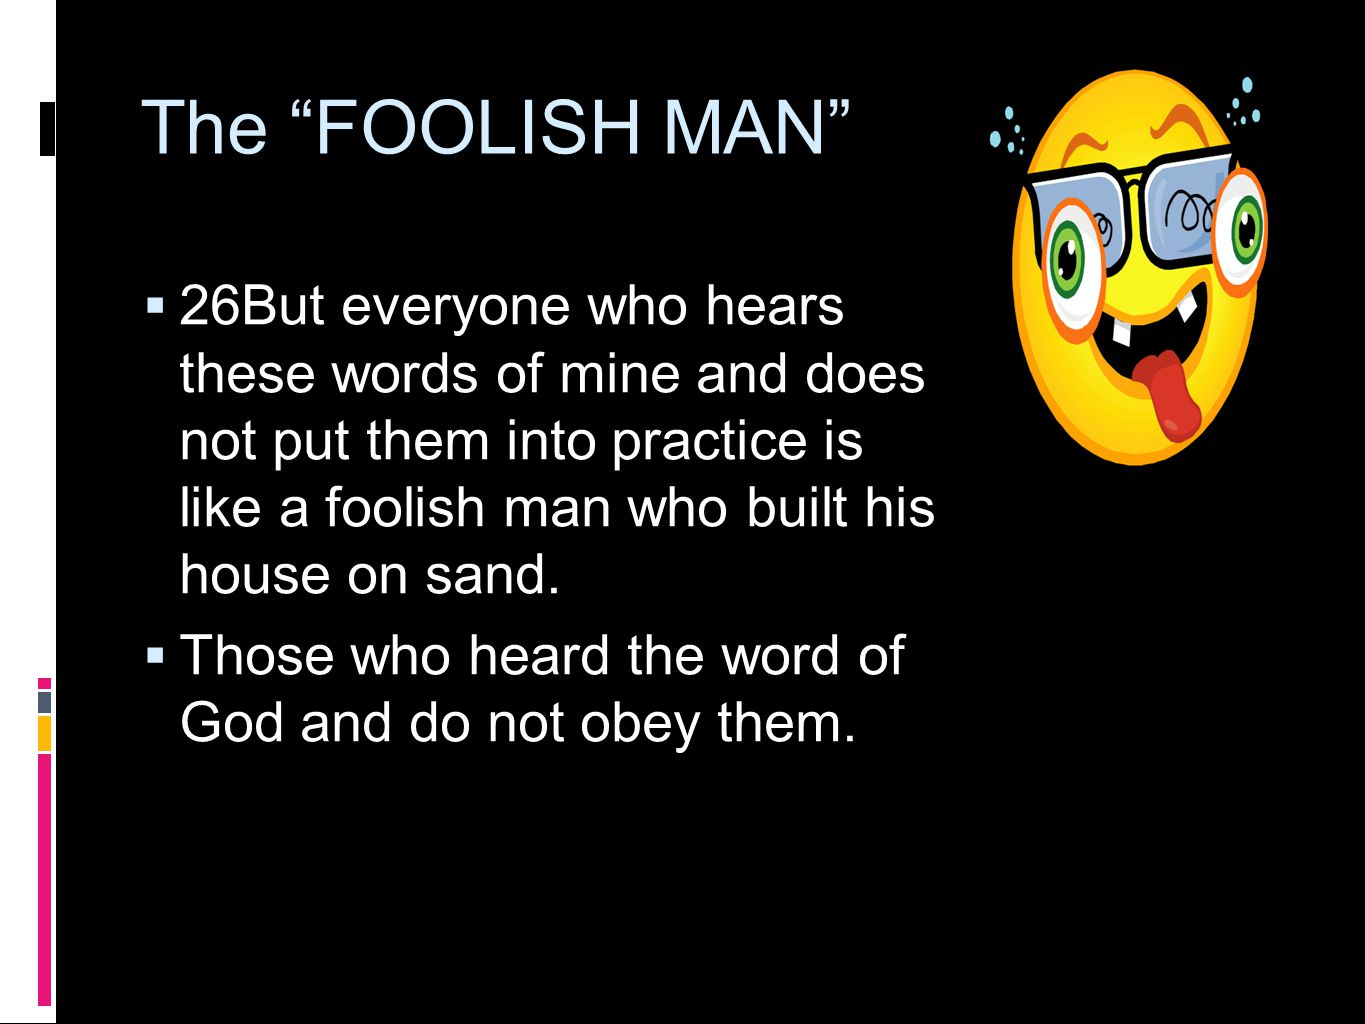 The FOOLISH MAN  26But everyone who hears these words of mine and does not put them into practice is like a foolish man who built his house on sand.